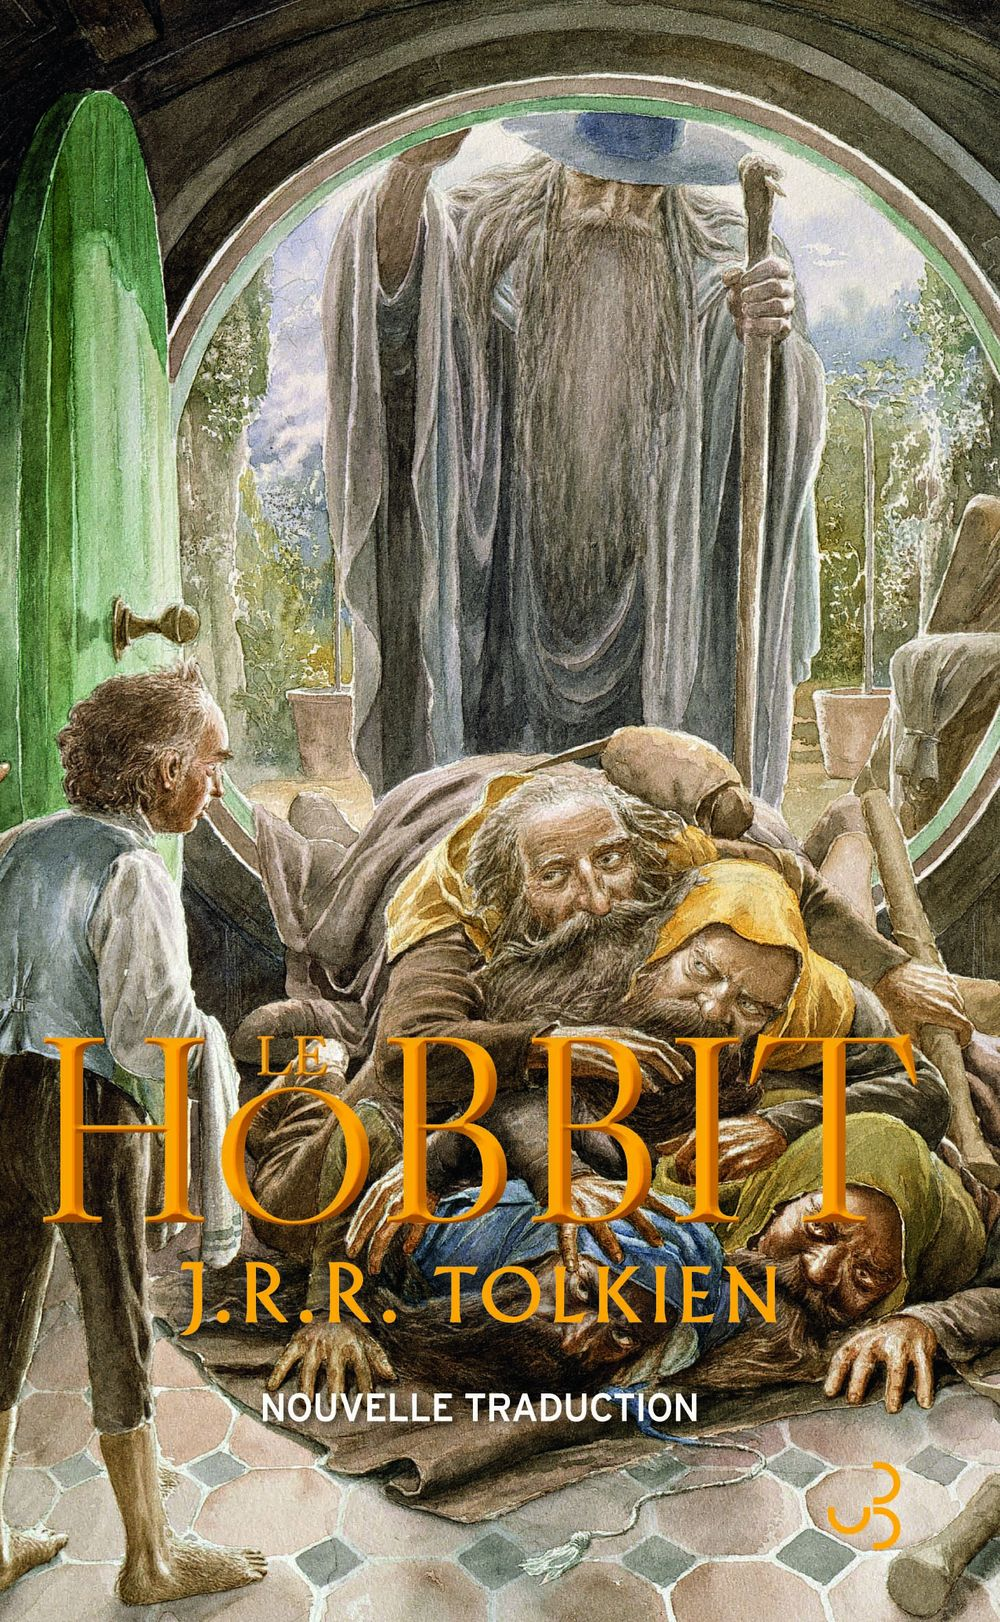 essay on the hobbit by j.j.r. tolkien Jjr tolkien writings the hobbit tolkien's first tale mentioning hobbits, this is the story of bilbo baggins' adventure to the lonely mountain and his finding of the.